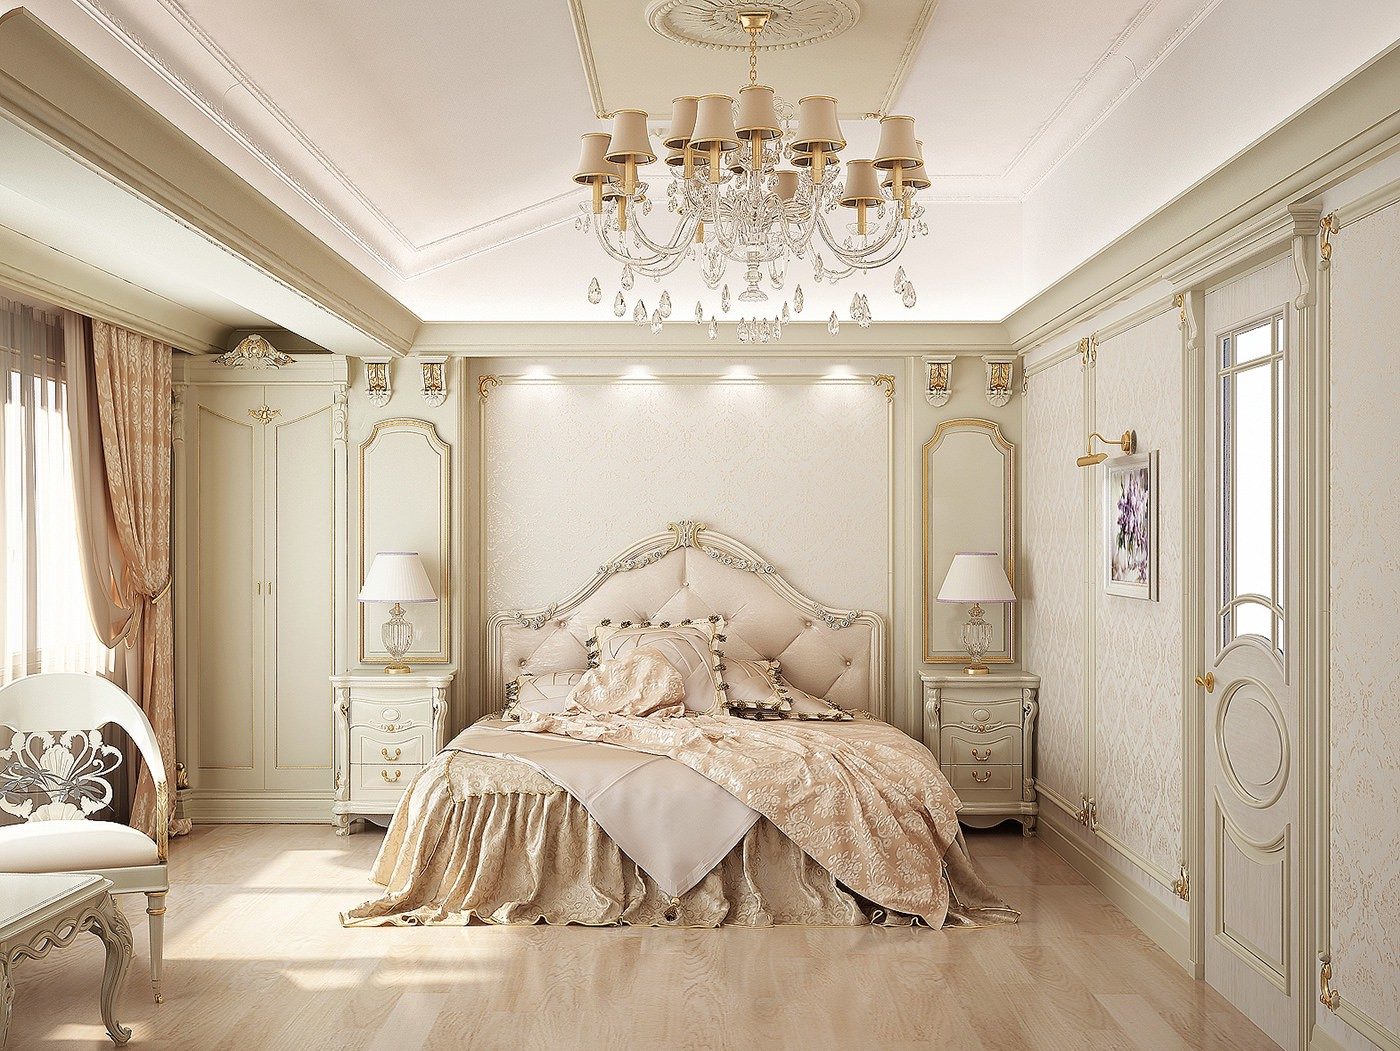 Bed Designs 2017 Classy Elegant Traditional Bedroom Design Dior Furniture Nyc